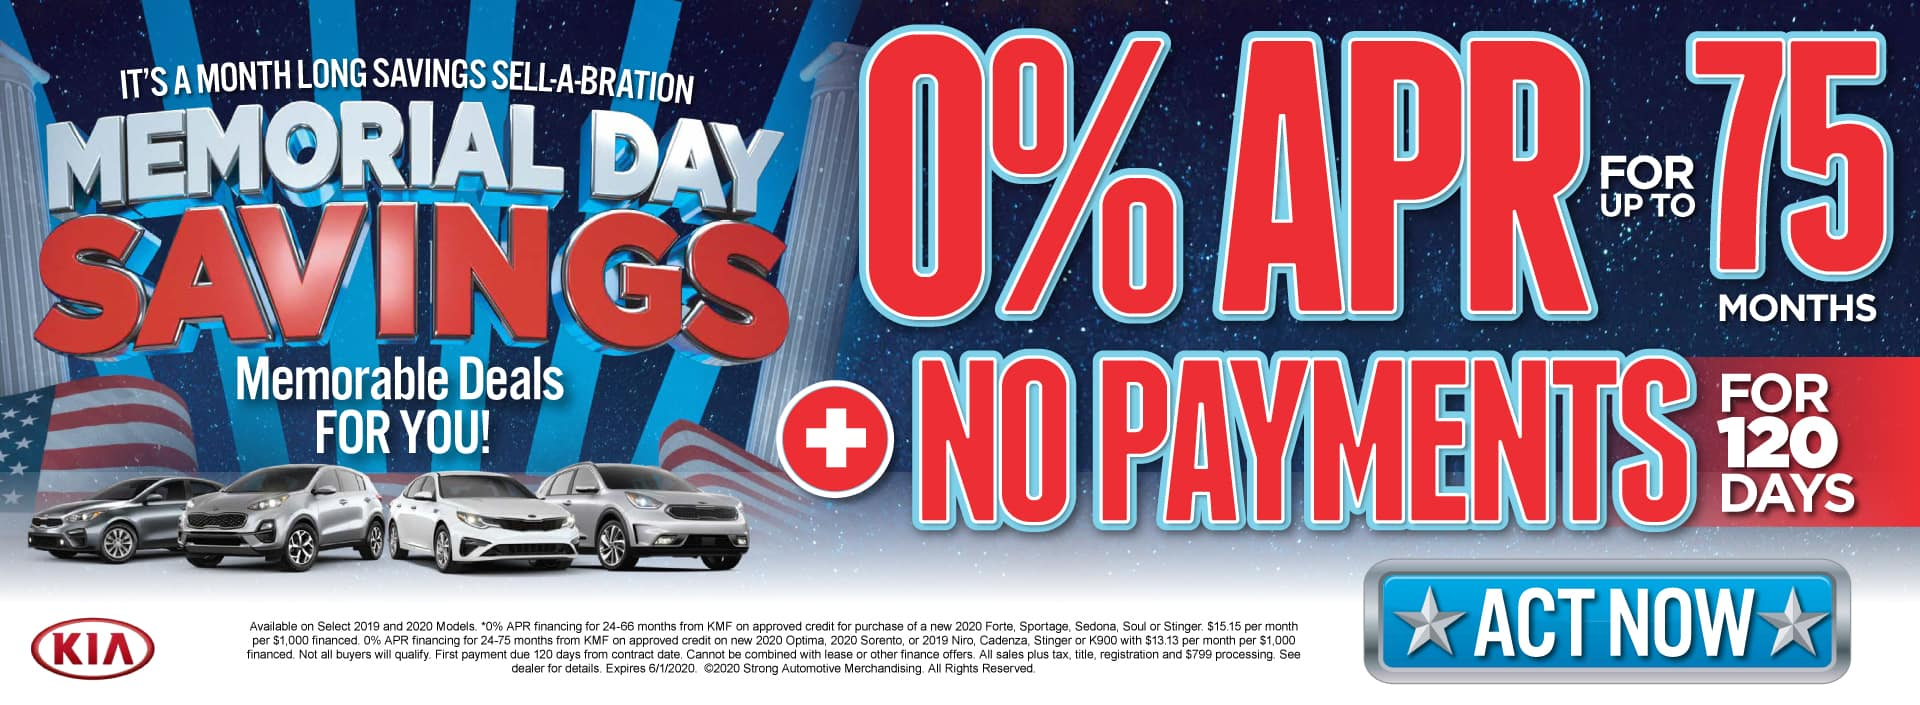 0% APR for 75 months plus No Payments for 120 Days - Act Now